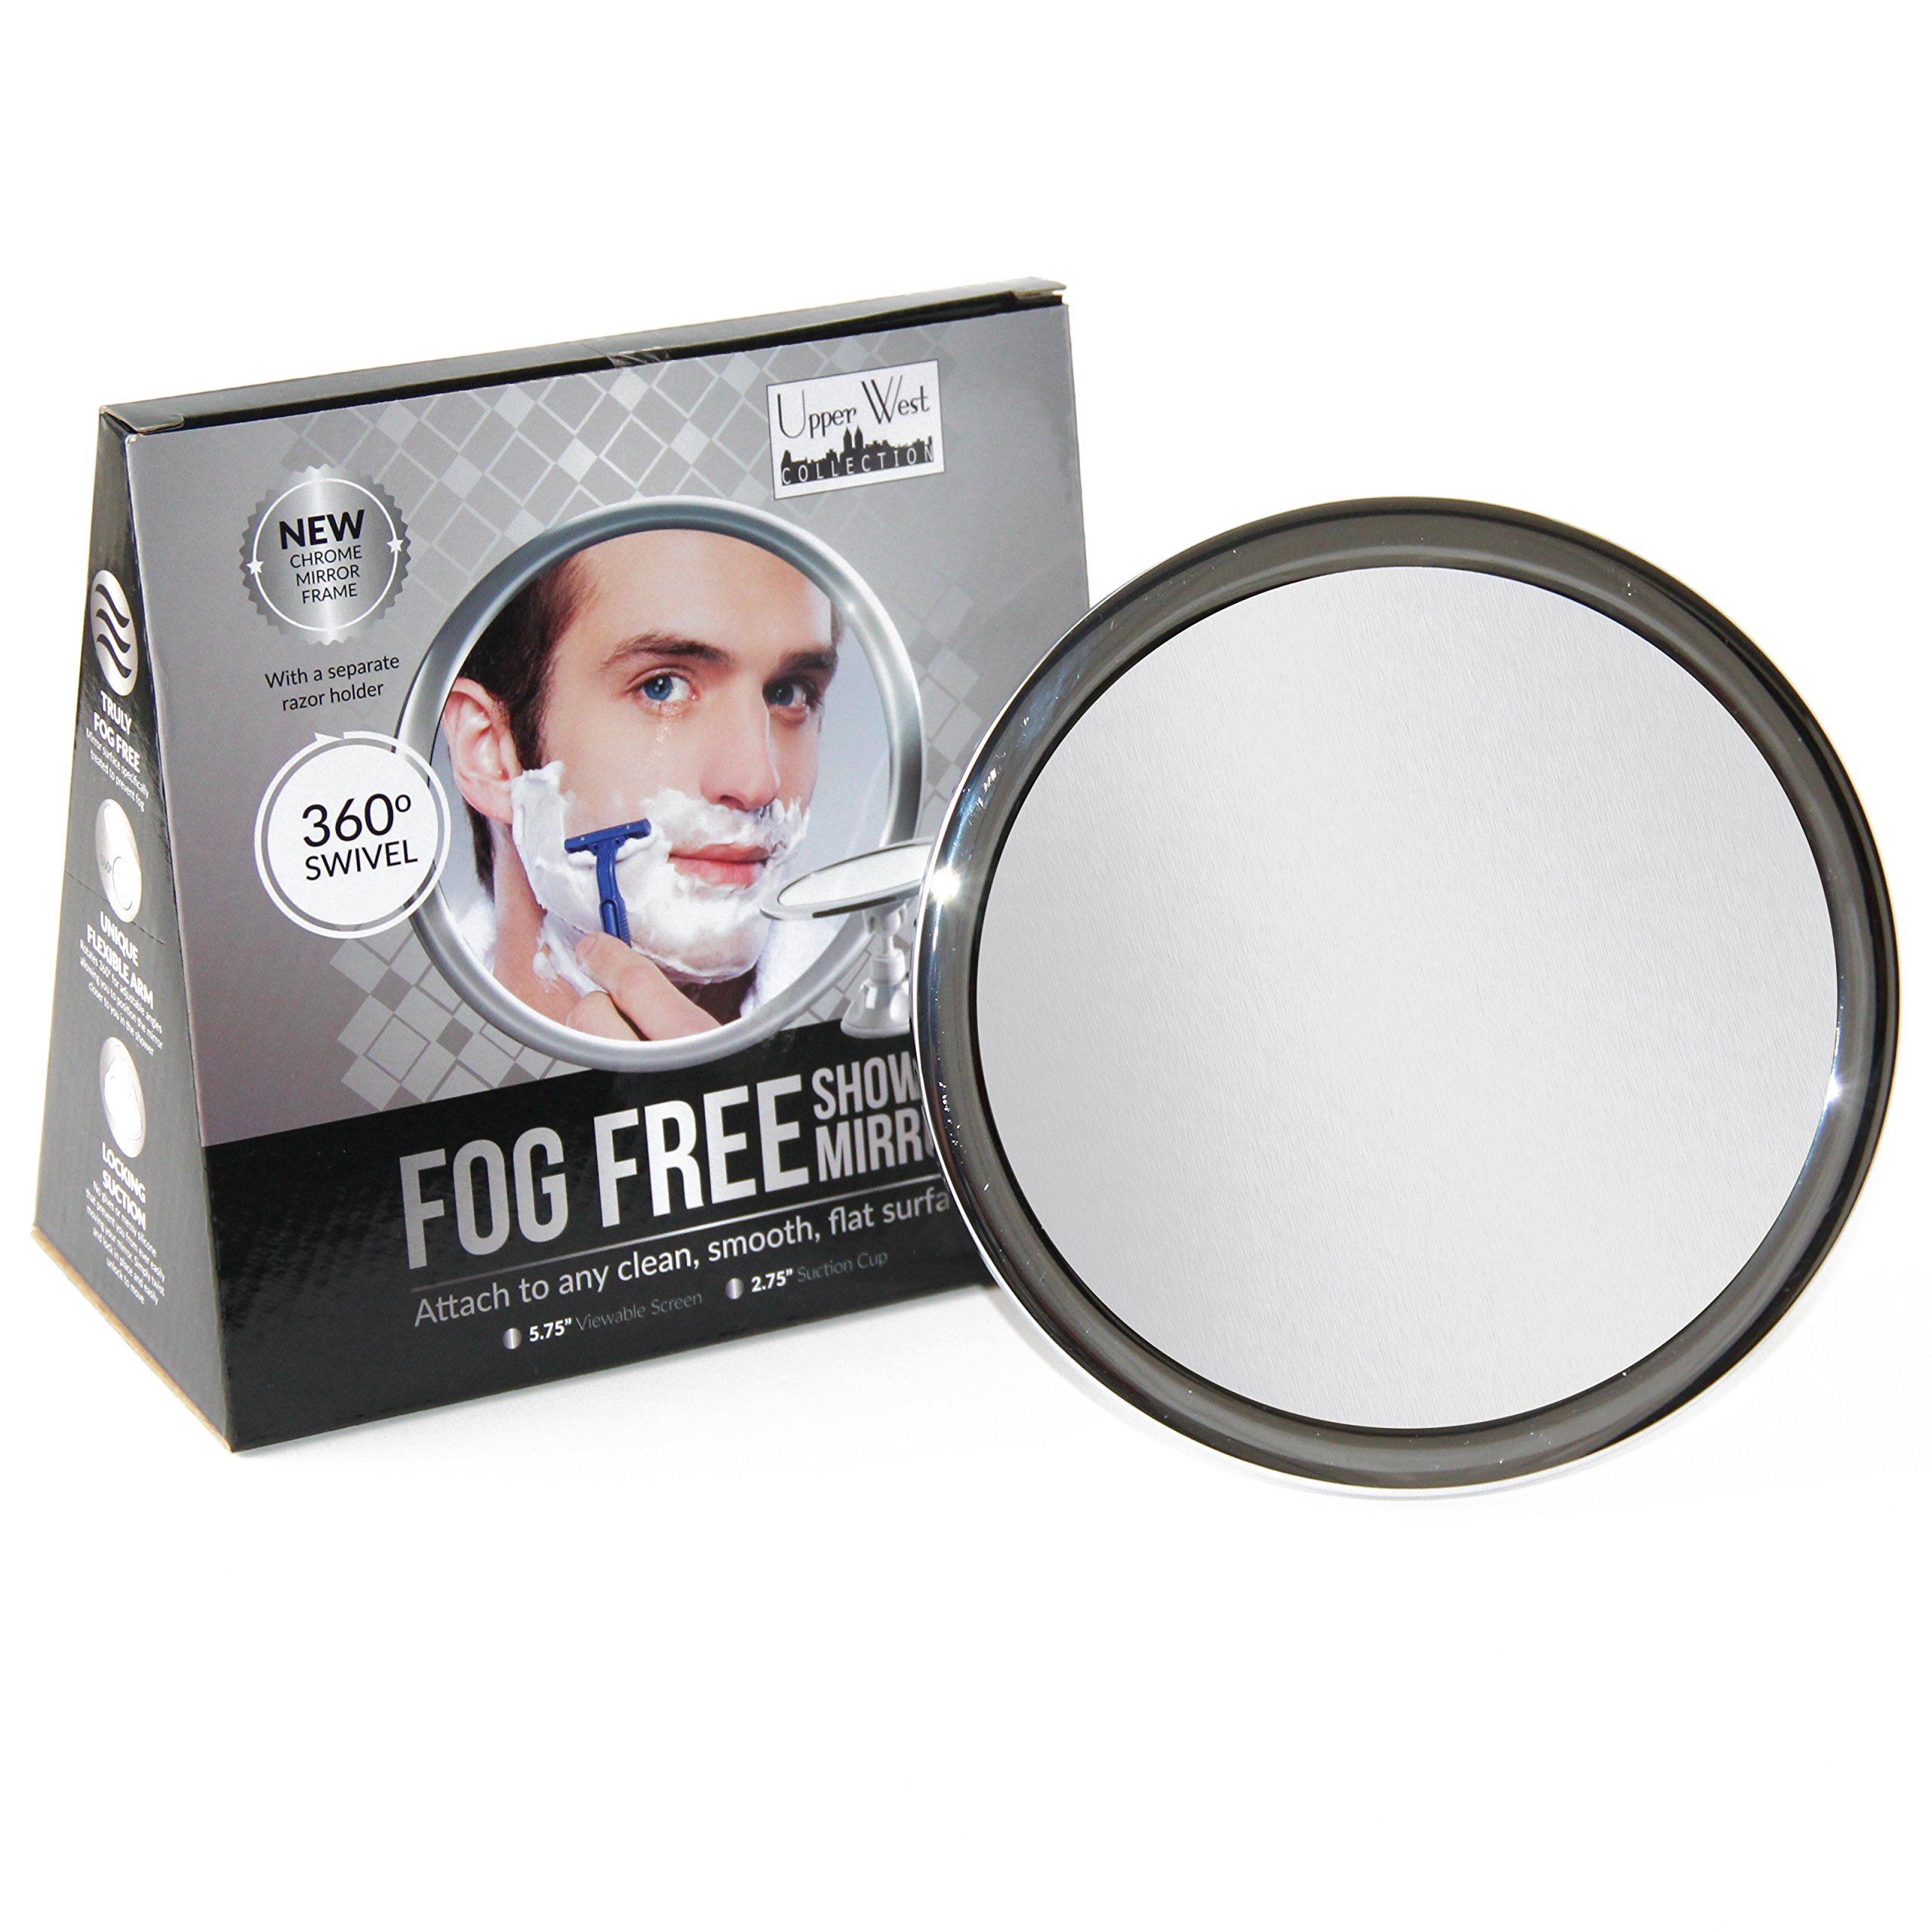 Upper West Collection No Fog Shower Mirror with Rotating, Locking Suction; Bonus Separate Razor Holder   Adjustable Arm for Easy Positioning   Best Personal Mirror for Shaving Available   The by Upper West Collection (Image #2)